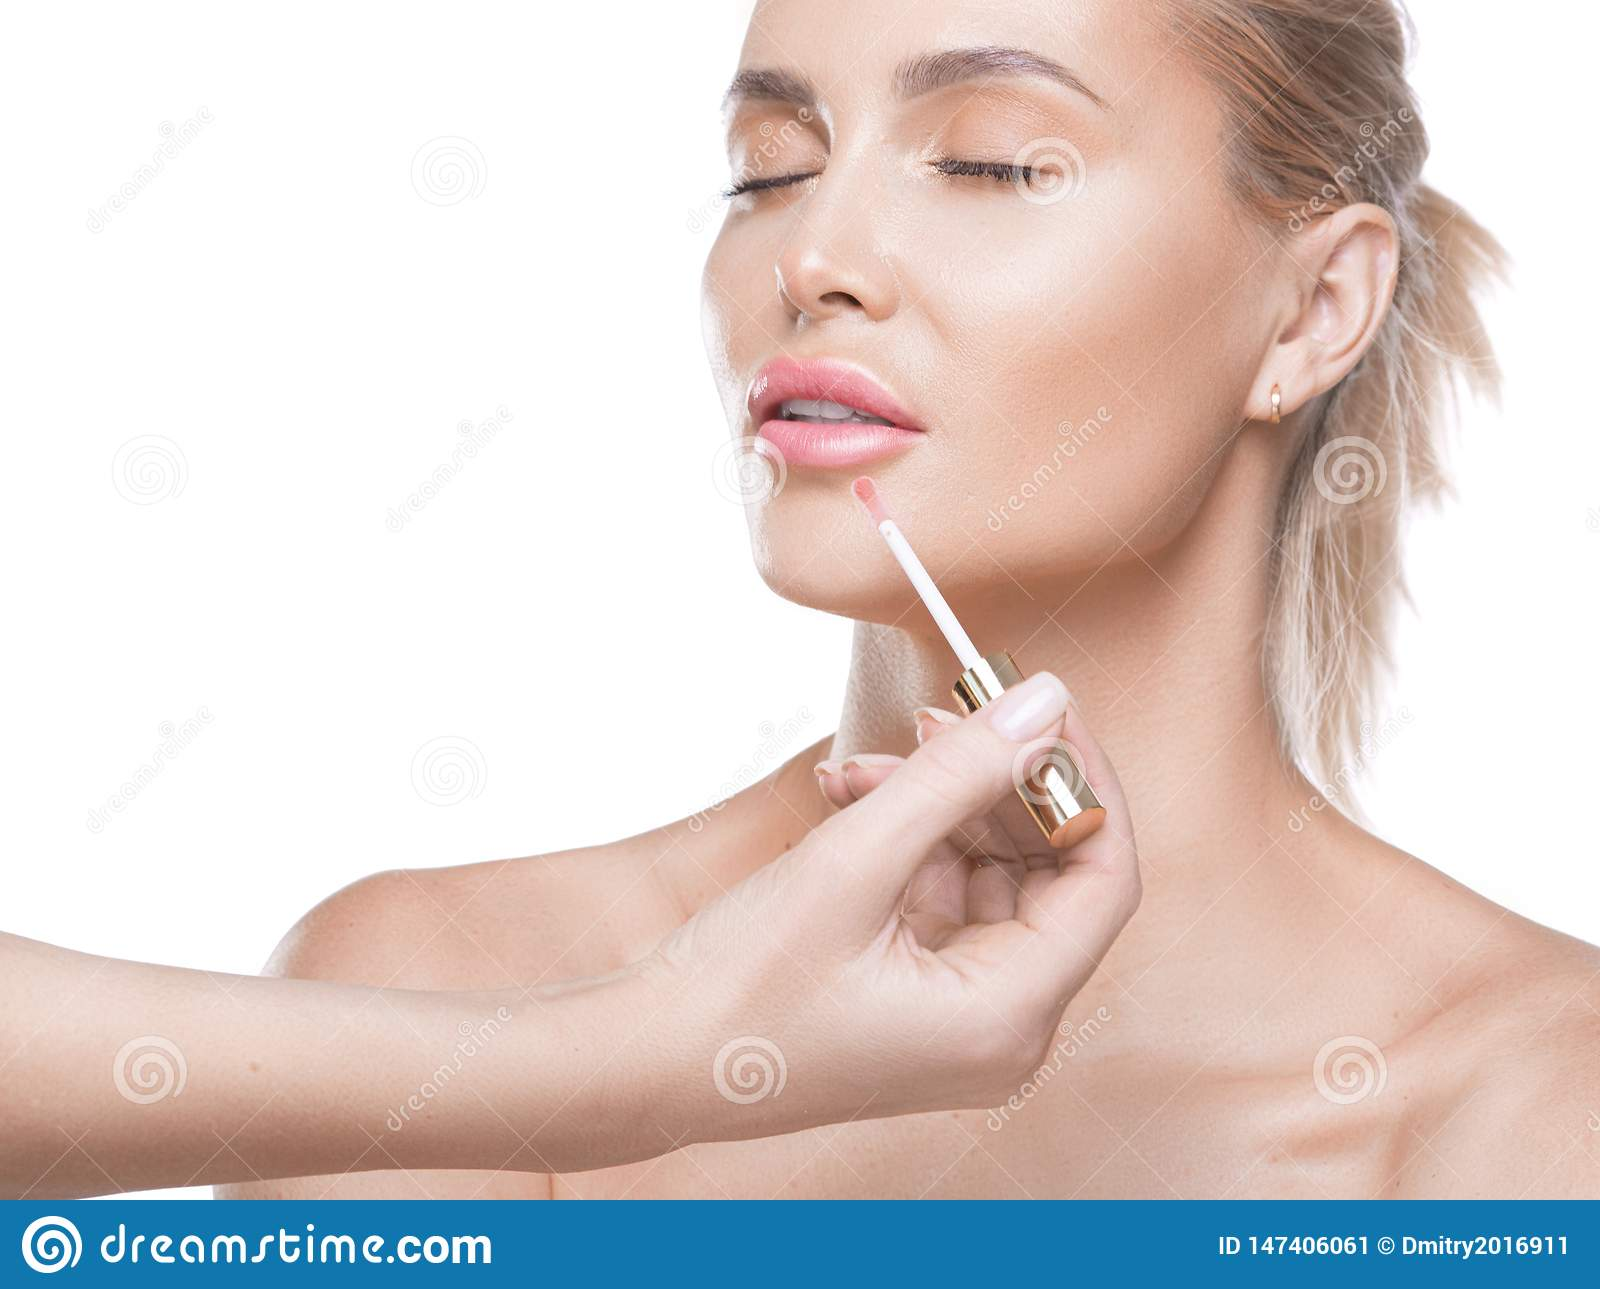 Nude Look The Making Of Nude Look For Lips. Fresh And Sparkling Lips Made By A Lip Gloss And Professional Lip Brush. The Finishing Stock Image - Image Of Brilliance, Glossy: 147406061